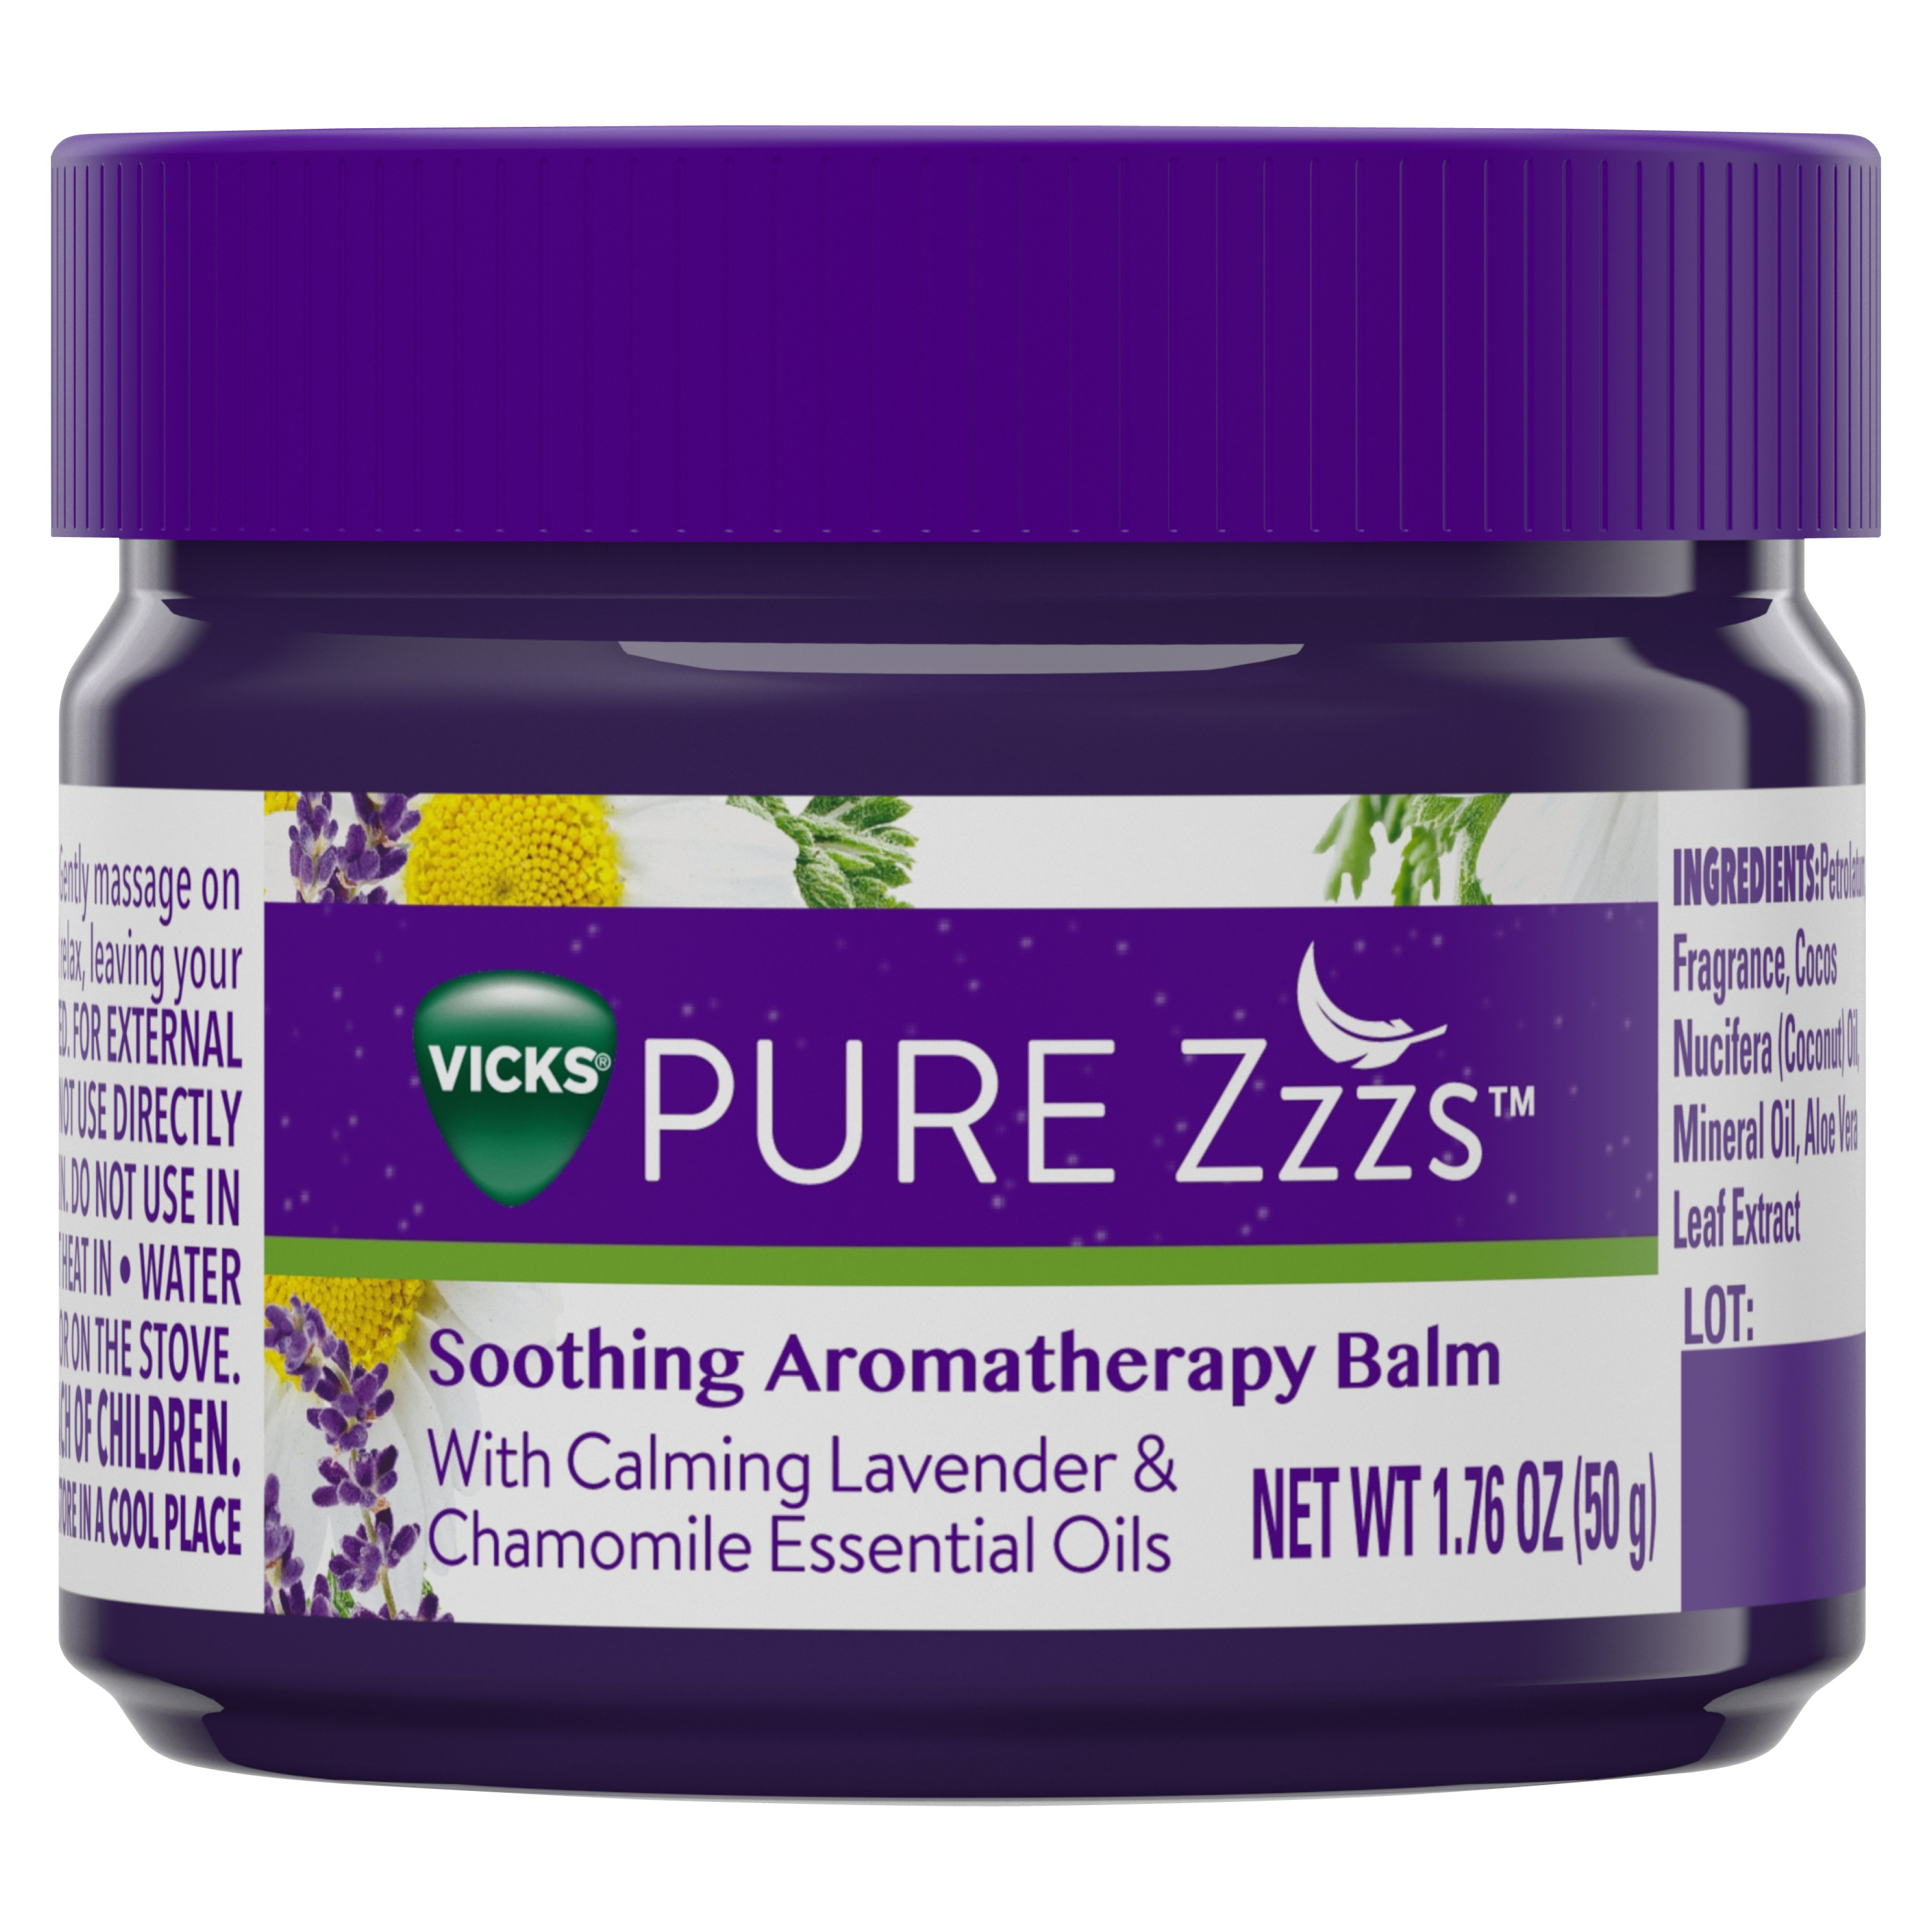 Vicks PURE Zzzs Soothing Aromatherapy Balm with Calming Lavender & Chamomile Essential Oils, 1.76 oz